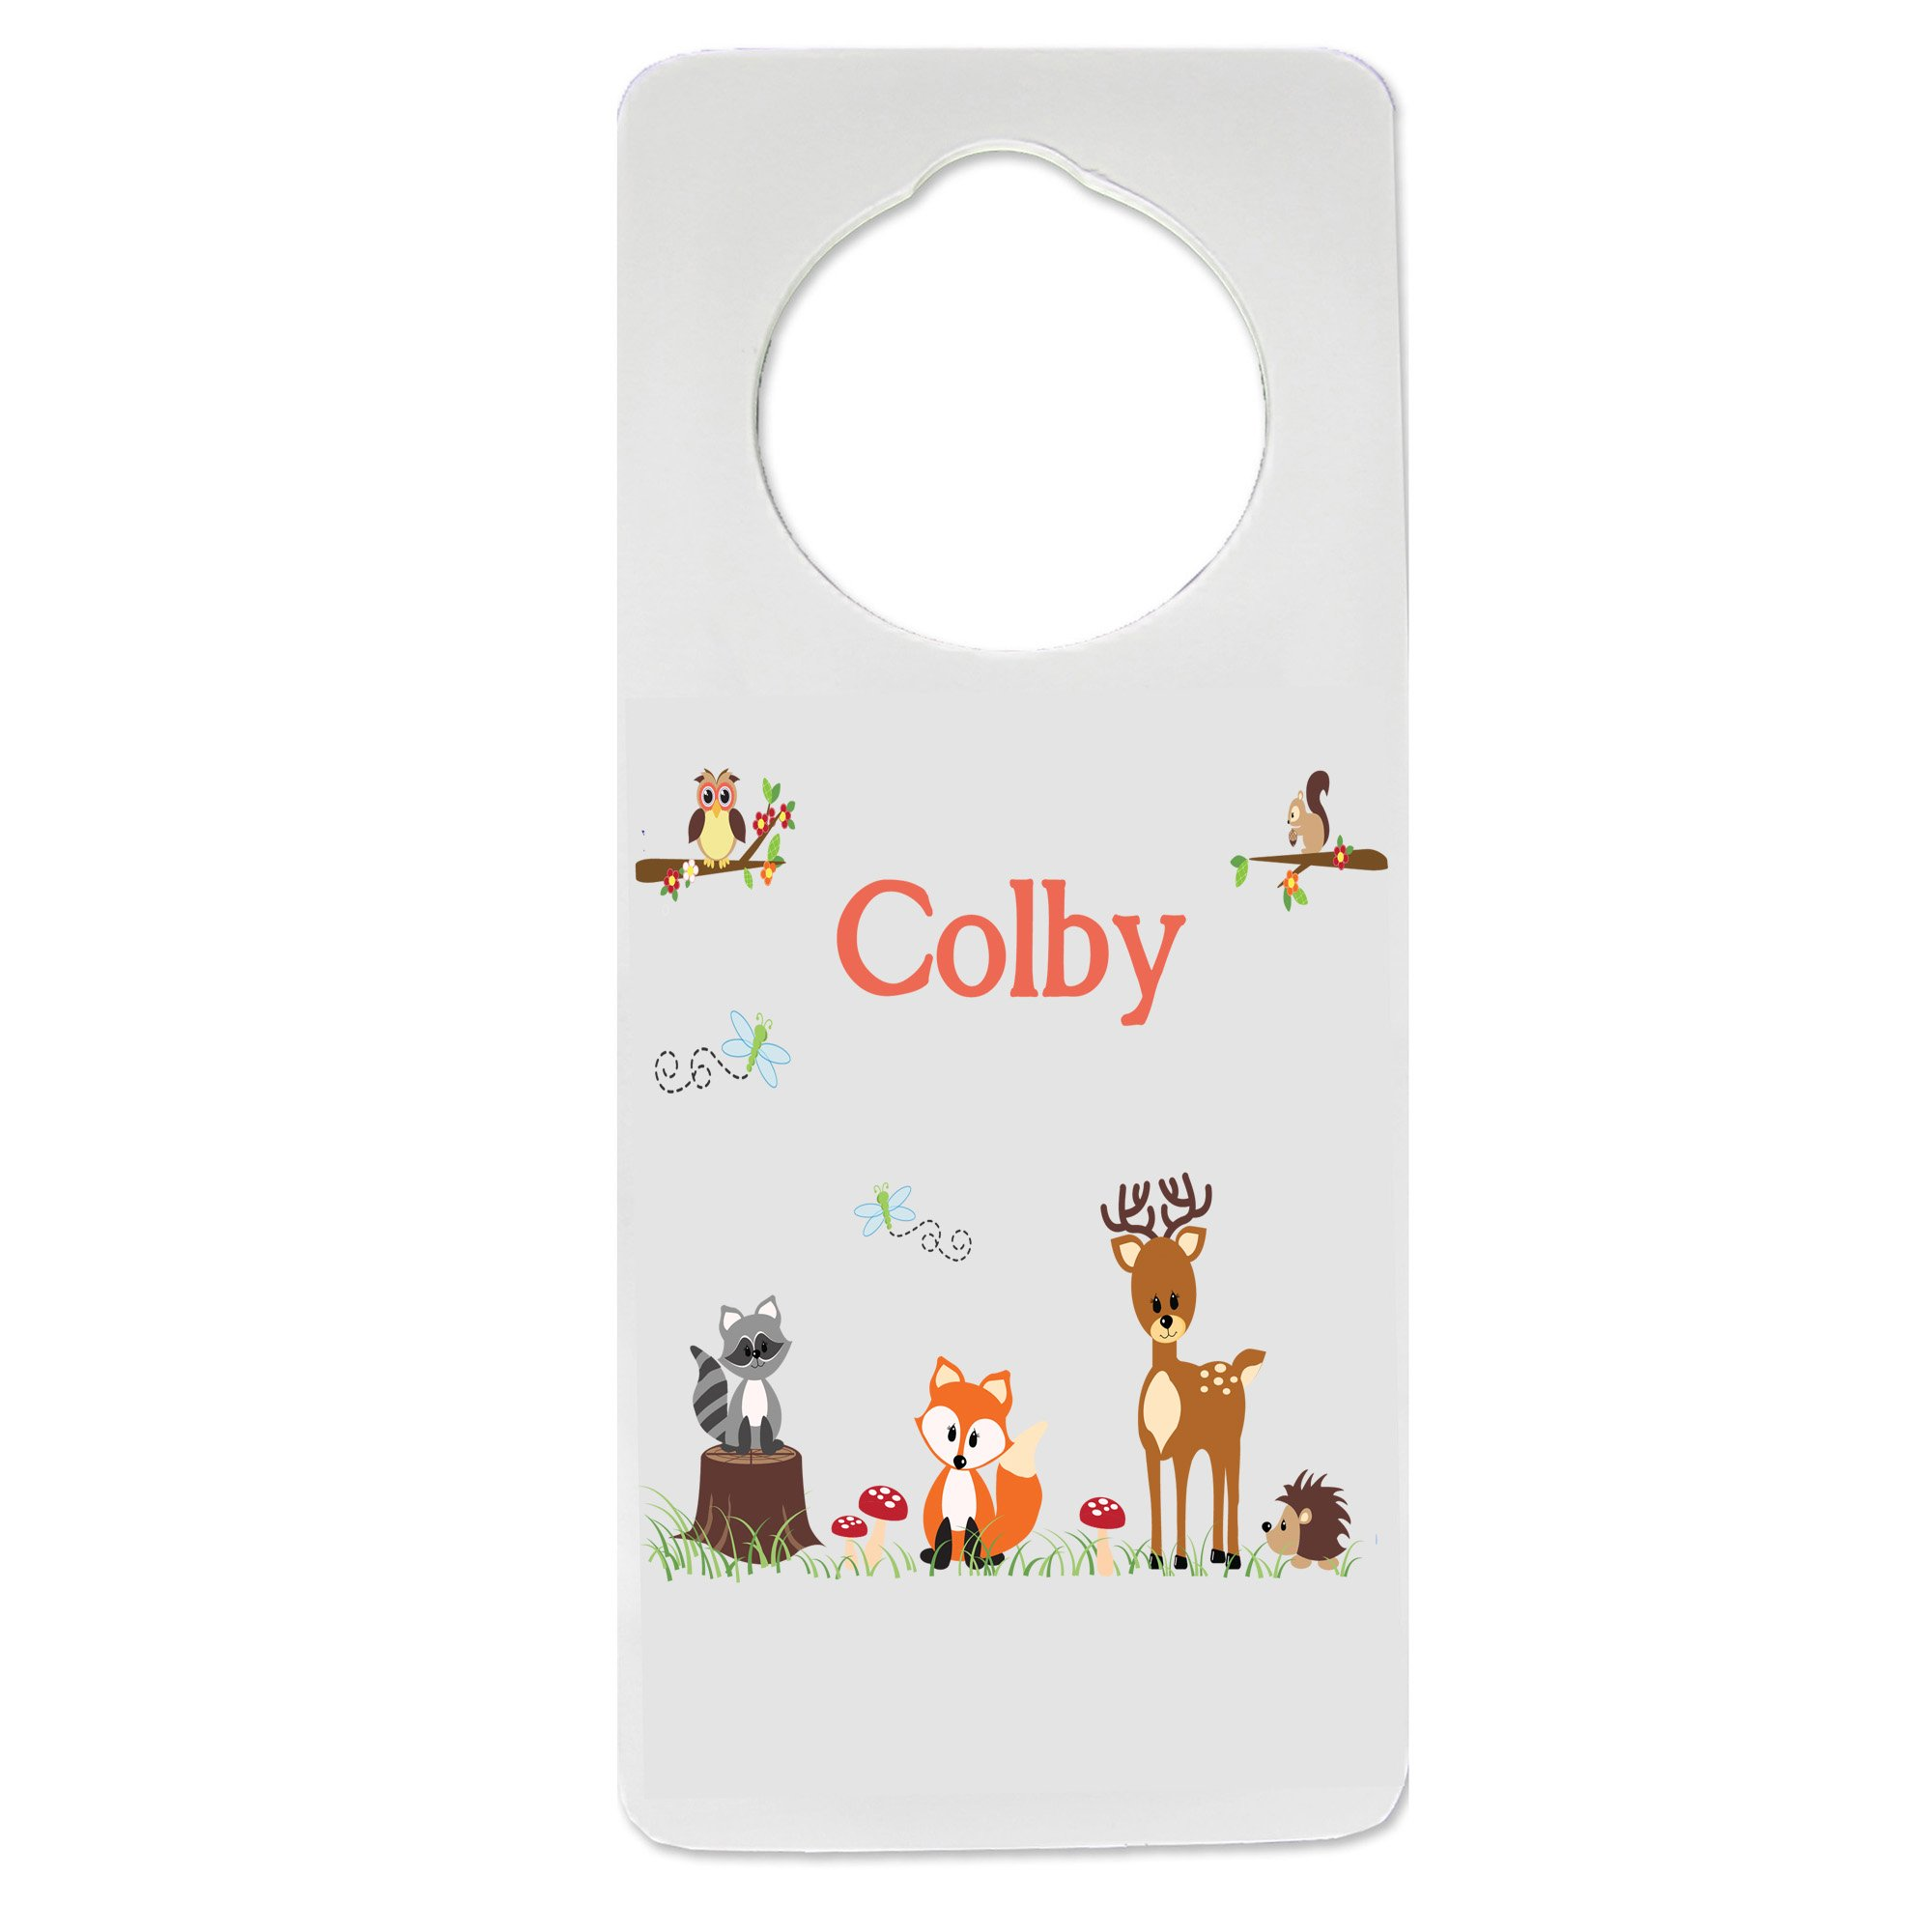 Personalized Nursery Door Hanger with Coral Forest Animals design